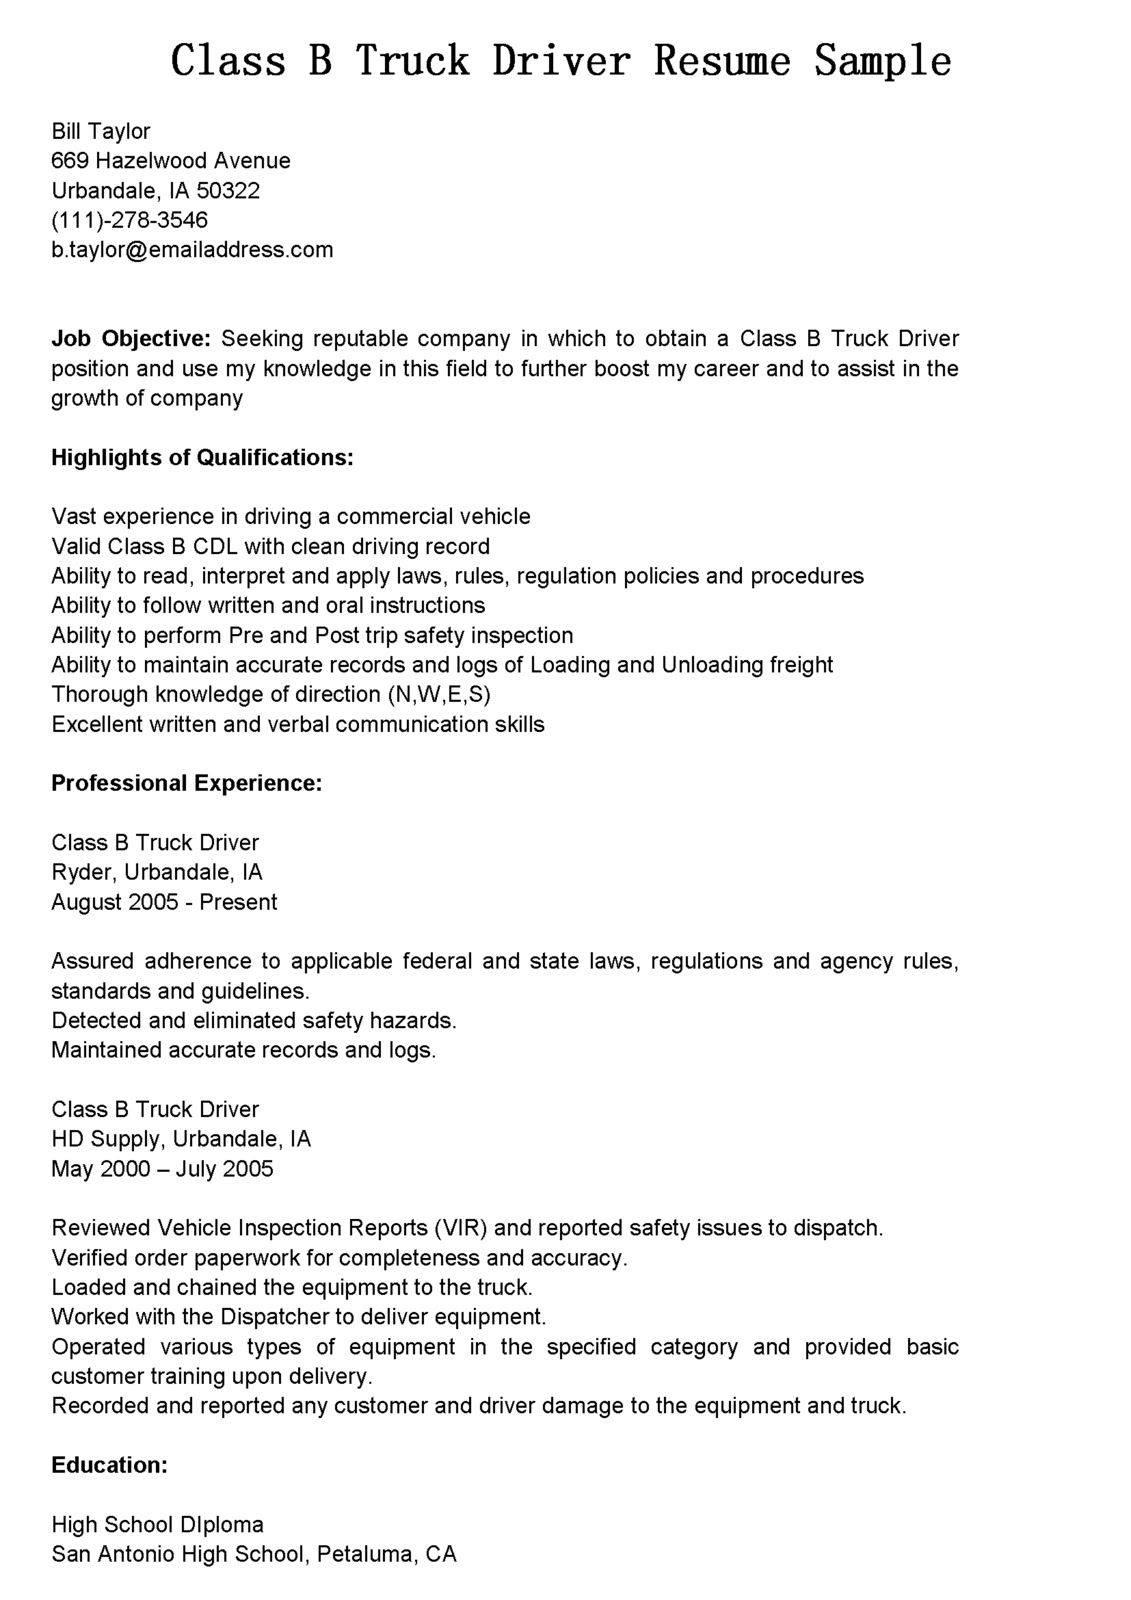 Resume Format Samples Truck Drivers Resume Sample  Httptopresumetruckdrivers